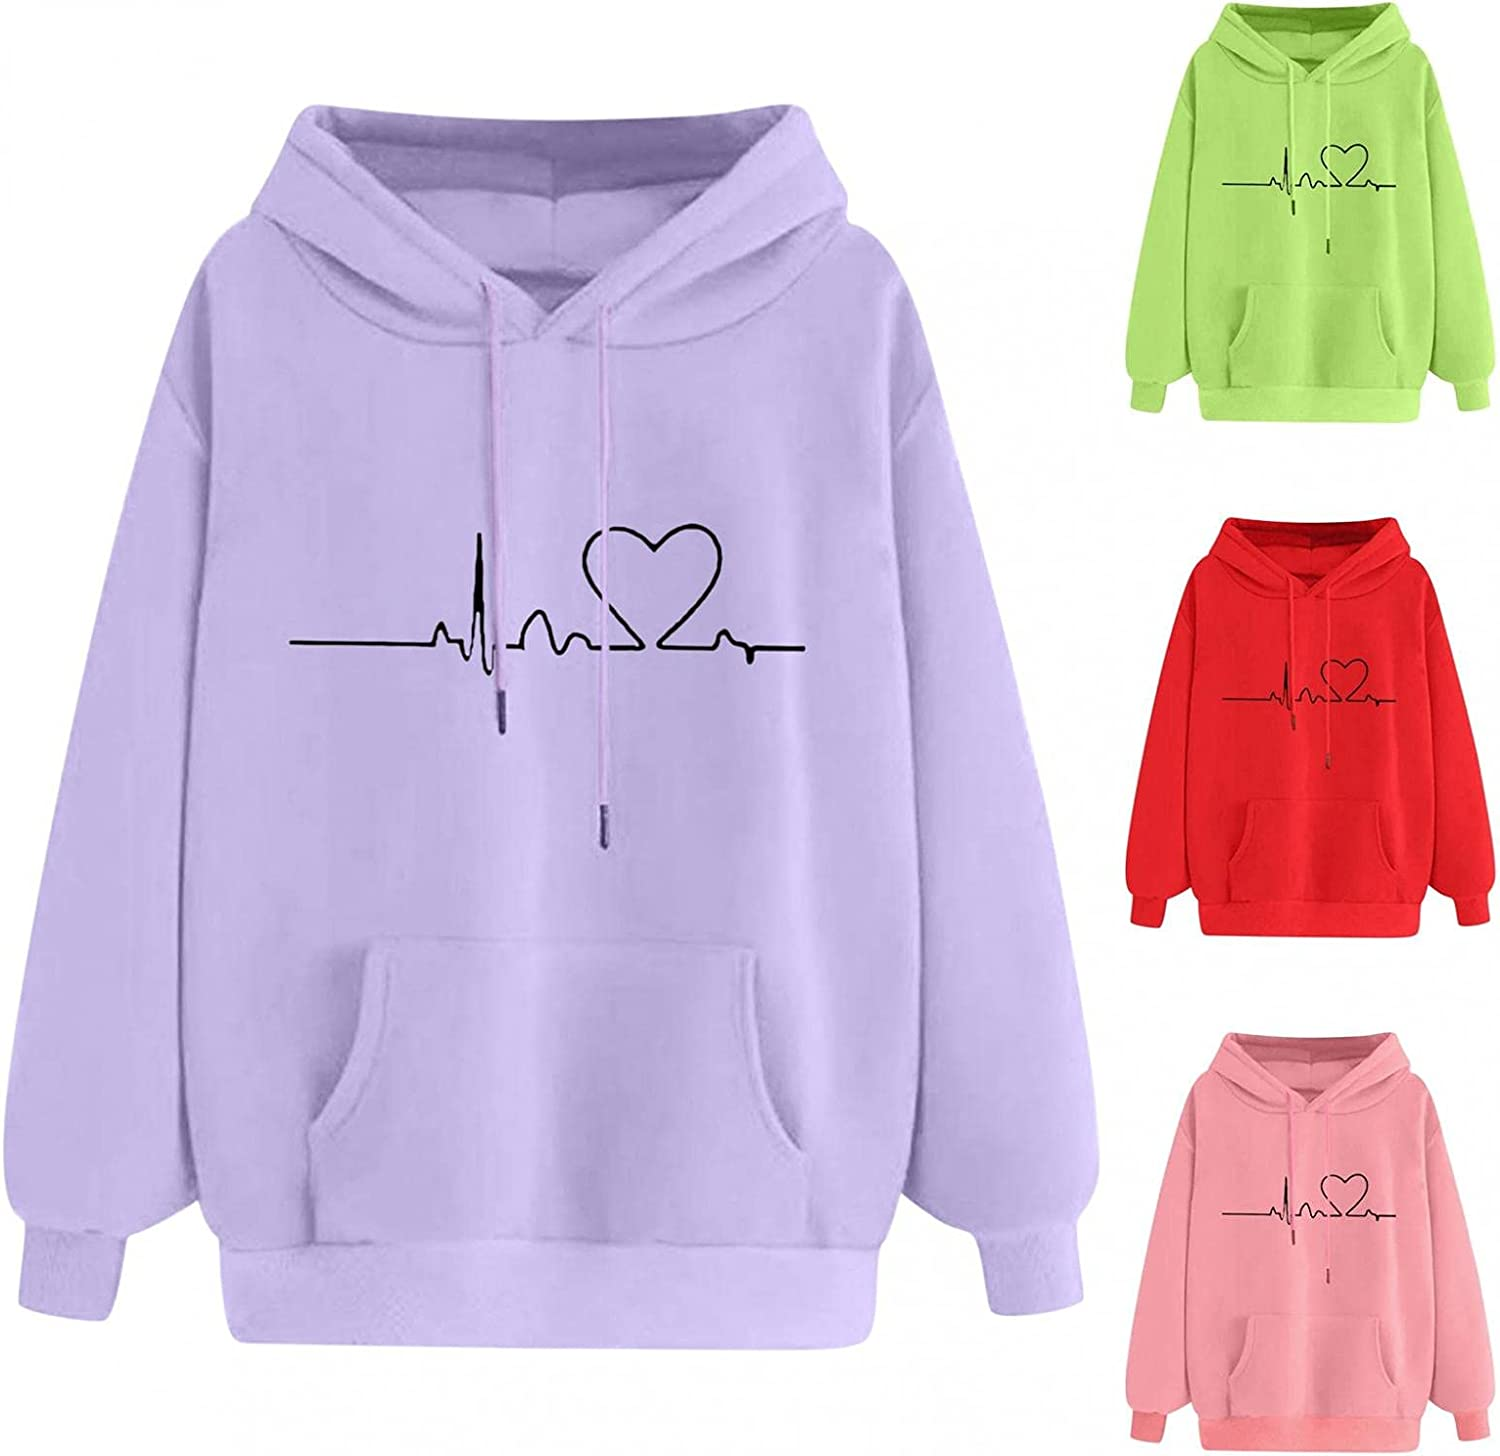 Fudule Cute Hoodies for Teen Girls Heart Graphic Sweatshirts Colorful Long Sleeve Shirts Women Casual Loose Fit Pullover